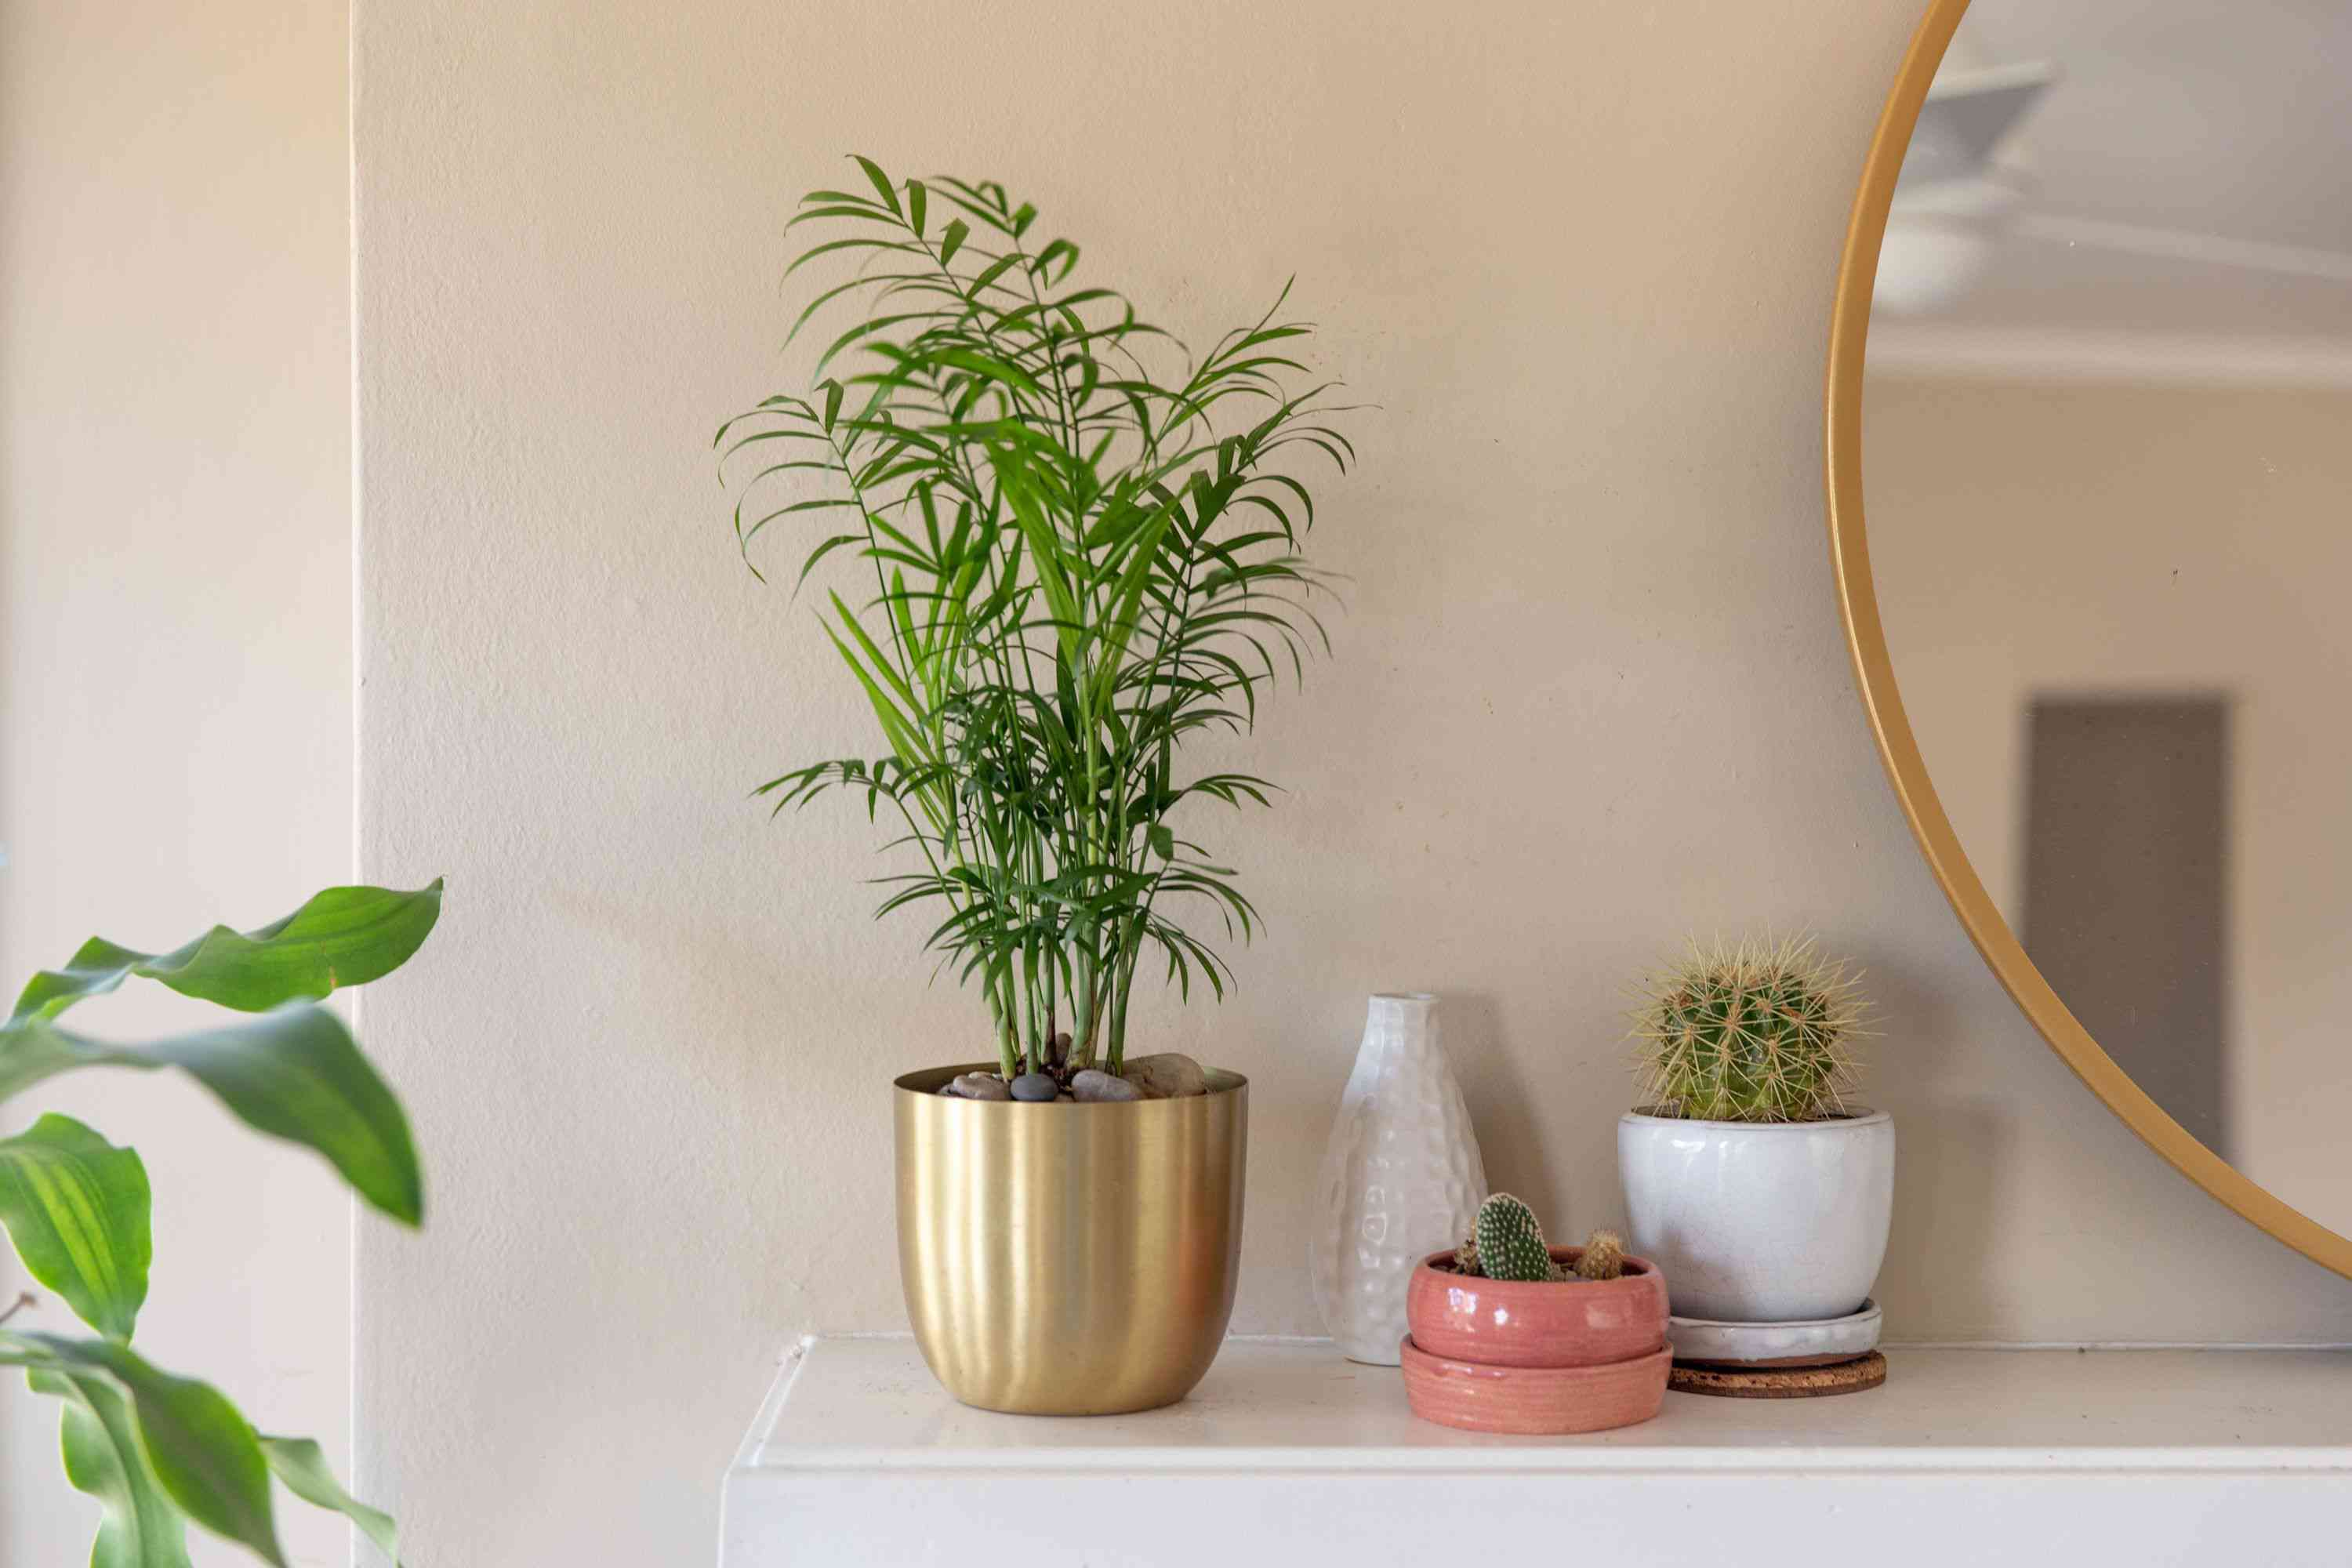 Parlor palm in gold pot with small green fronds on shelf next to decor items